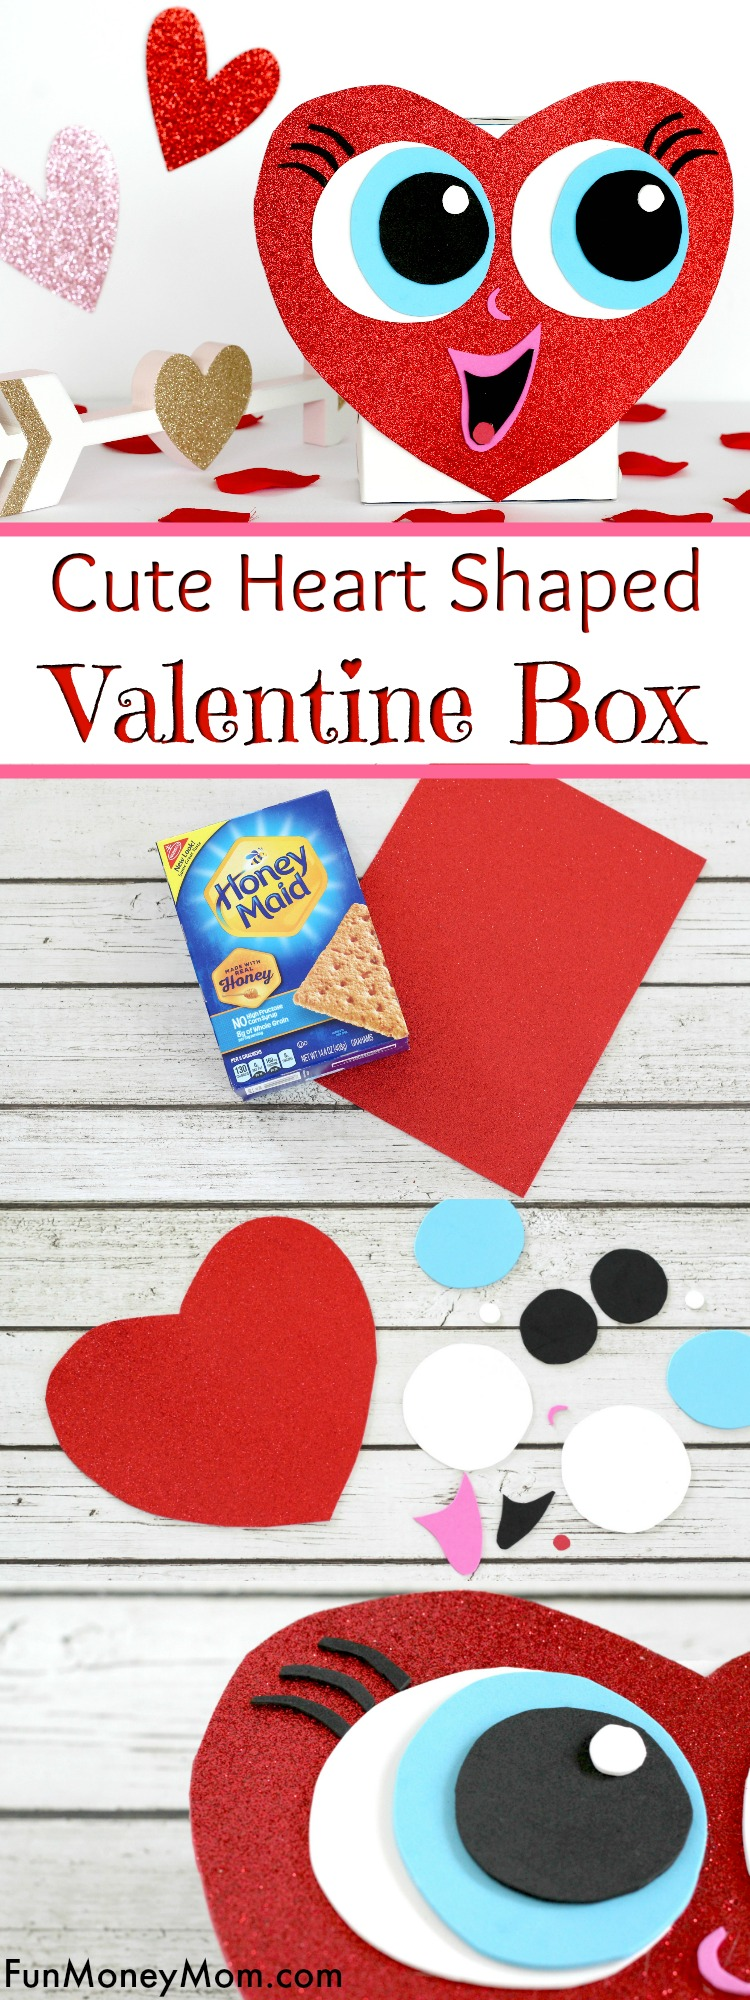 Cute Heart Shaped Valentine Box For Valentines Day Fun Money Mom